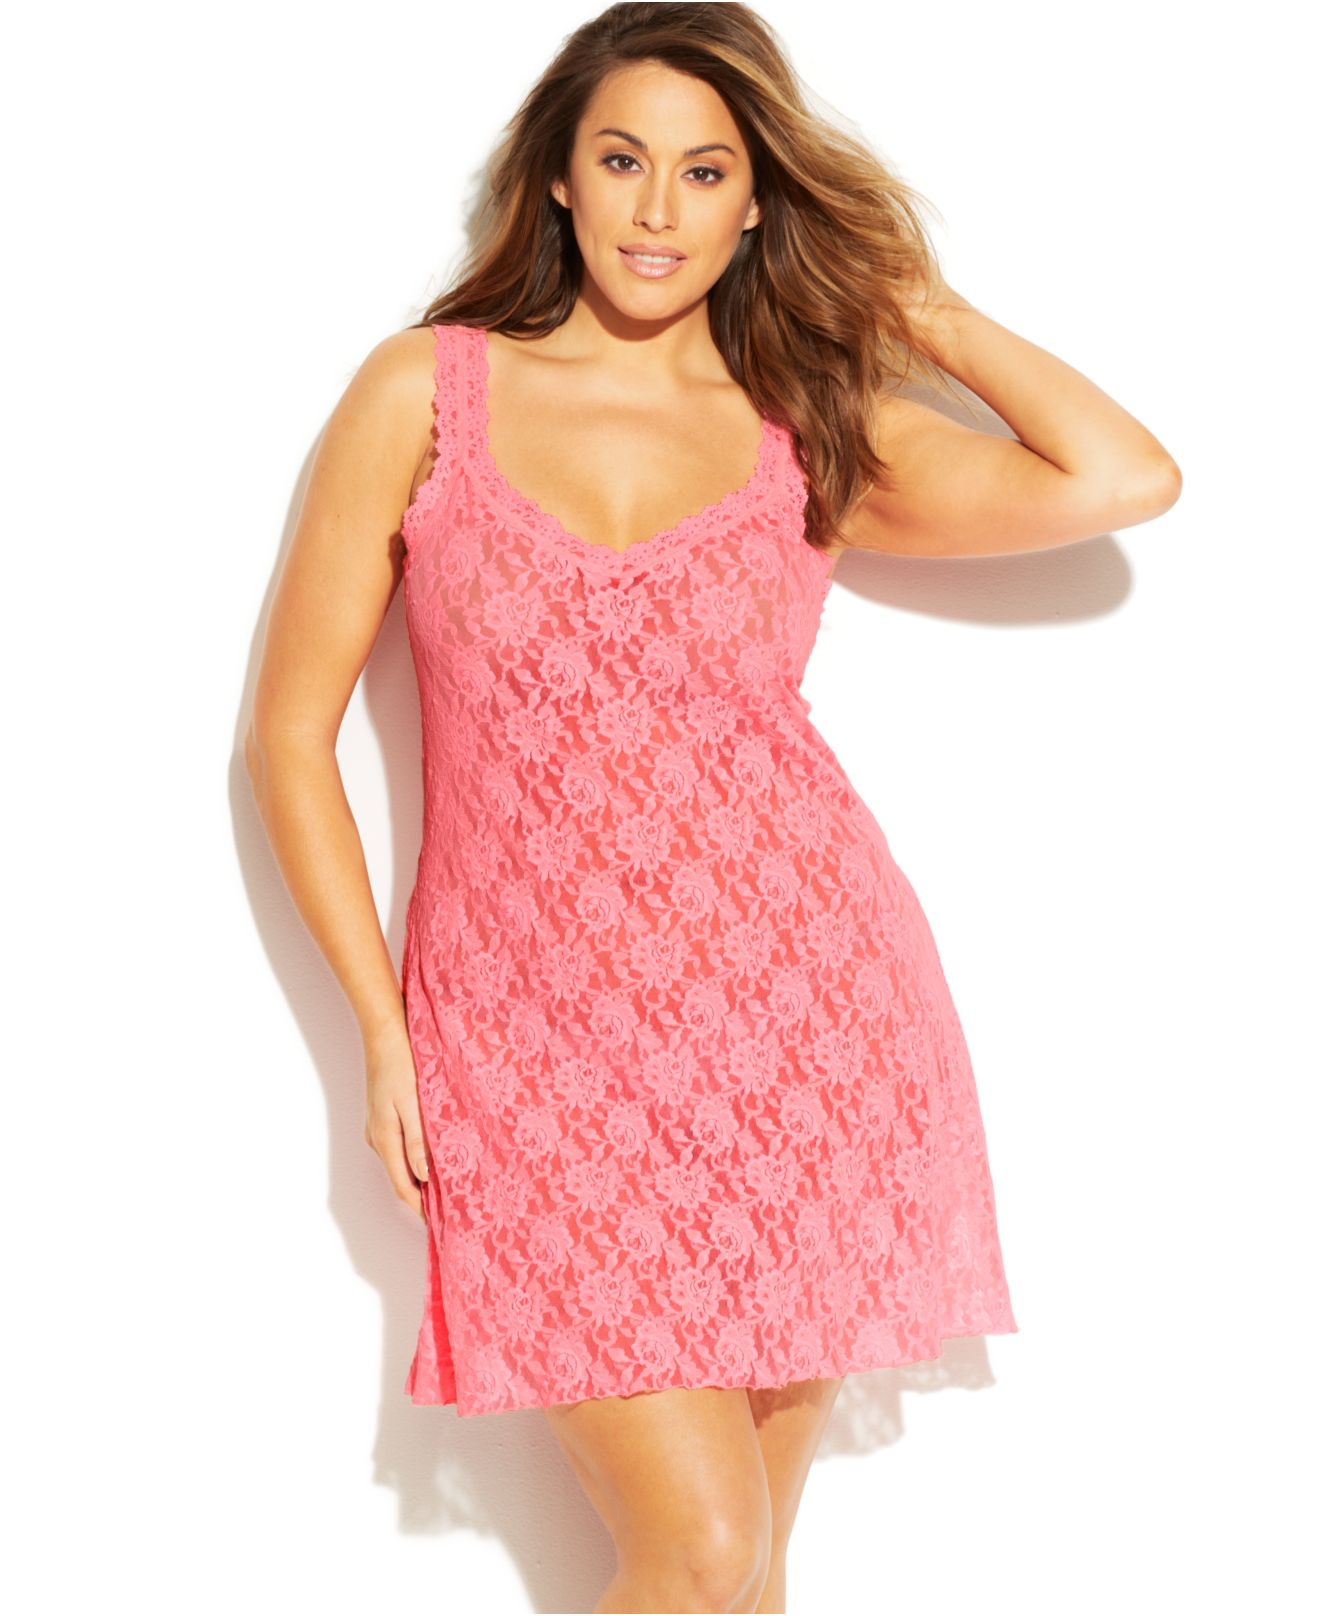 a571c675e Lyst - Hanky Panky Plus Size Signature Lace Chemise 485214x in Pink